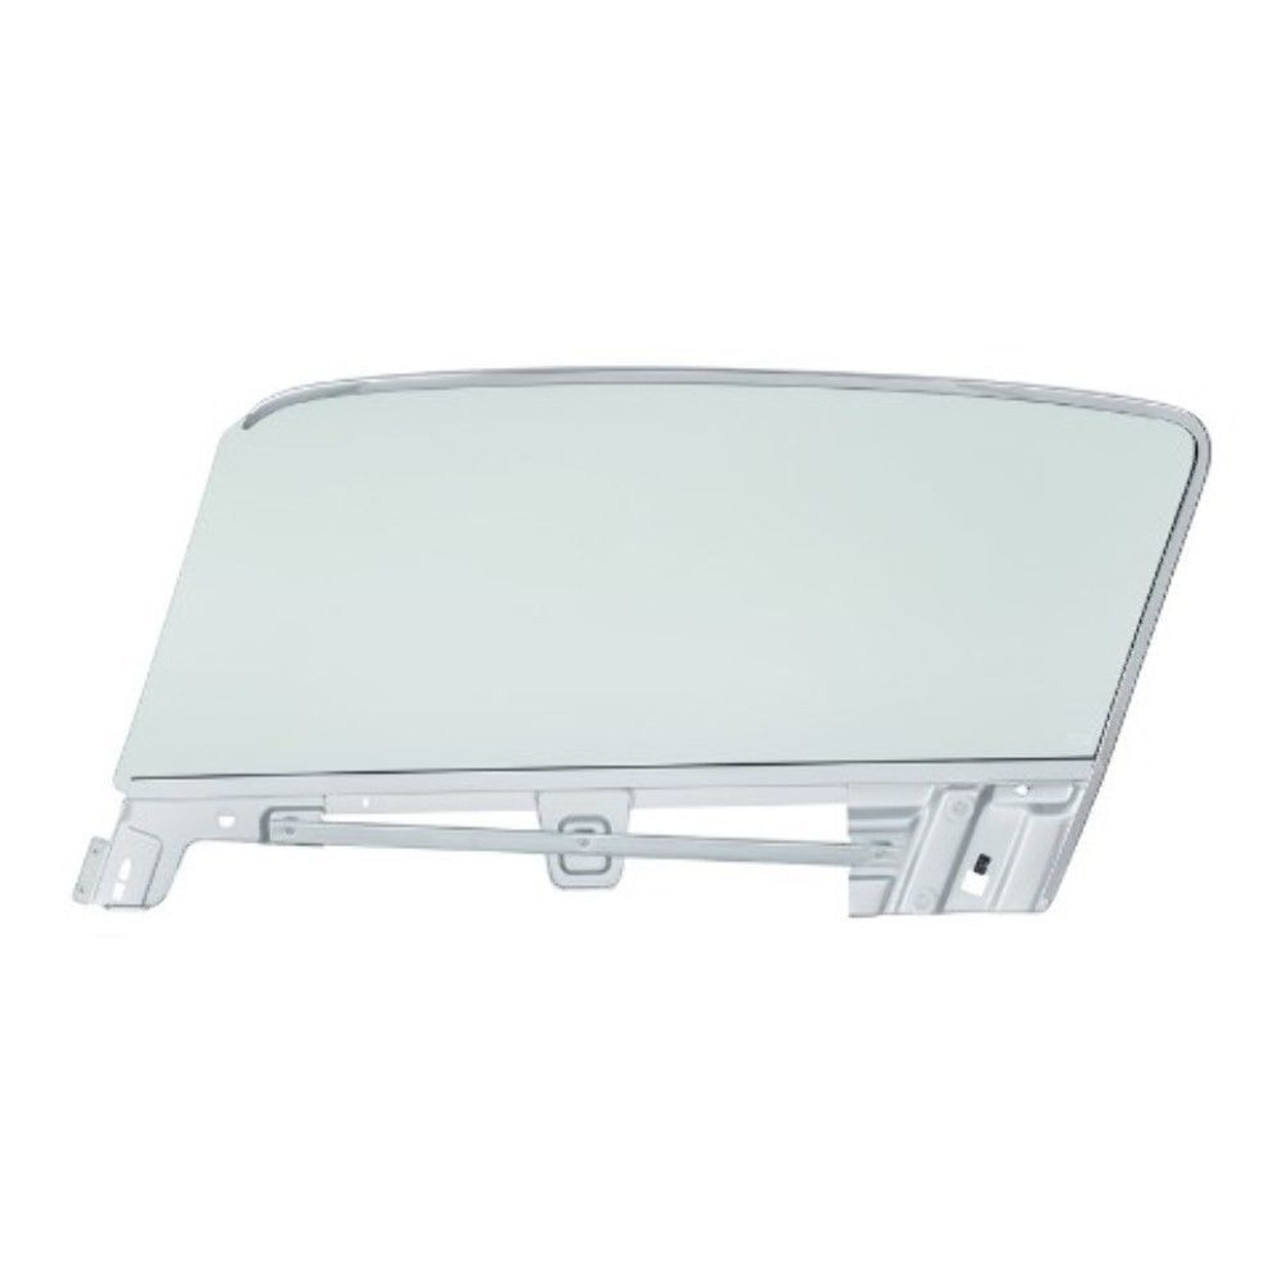 Complete Tint Door Glass Assembly  - R/H, Fits 1967-68 Ford Mustang Fastback